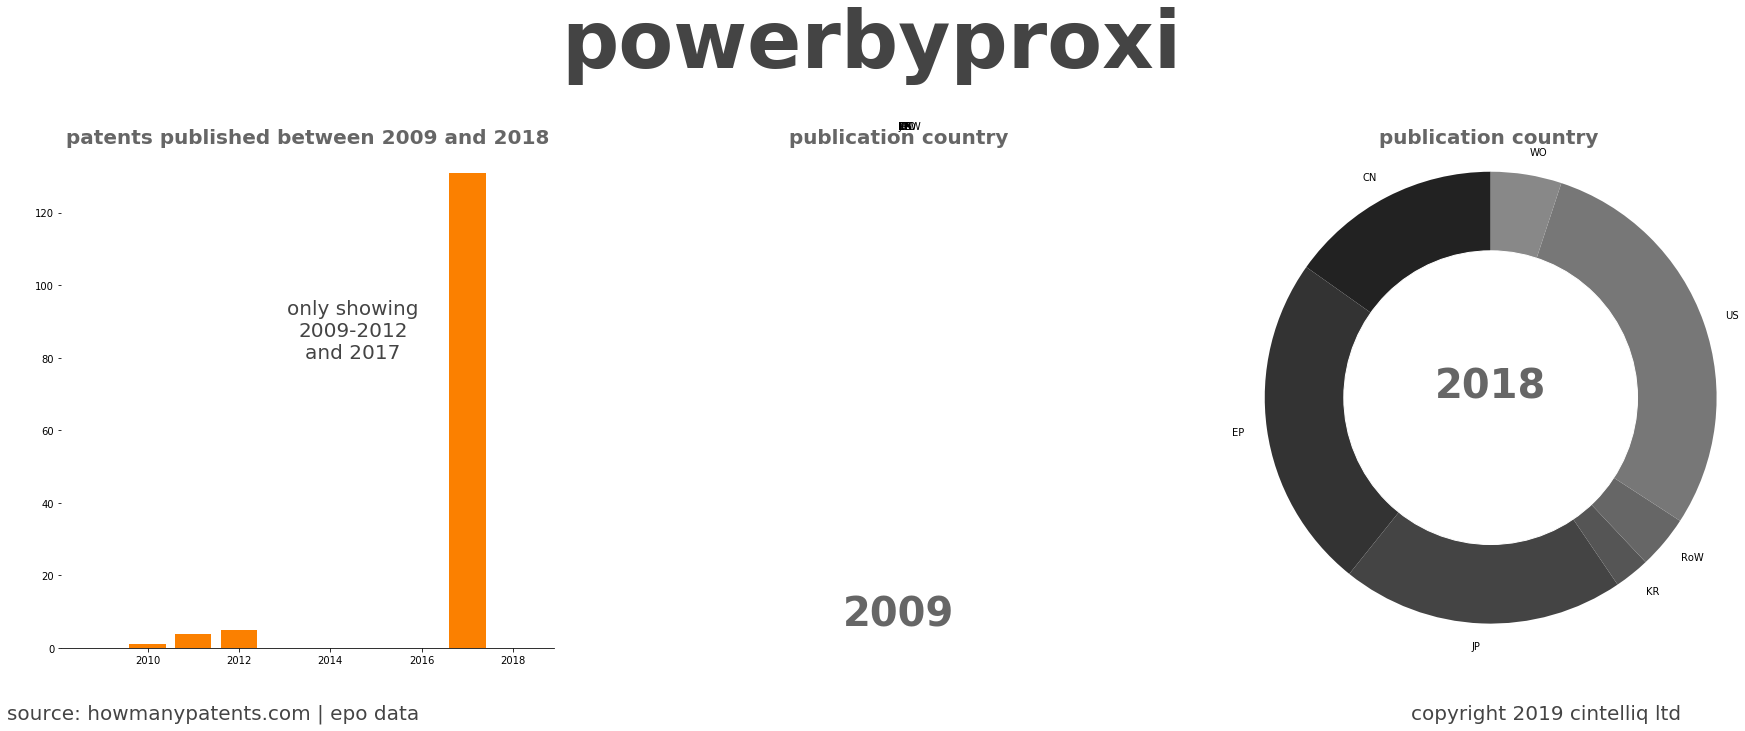 summary of patents for Powerbyproxi